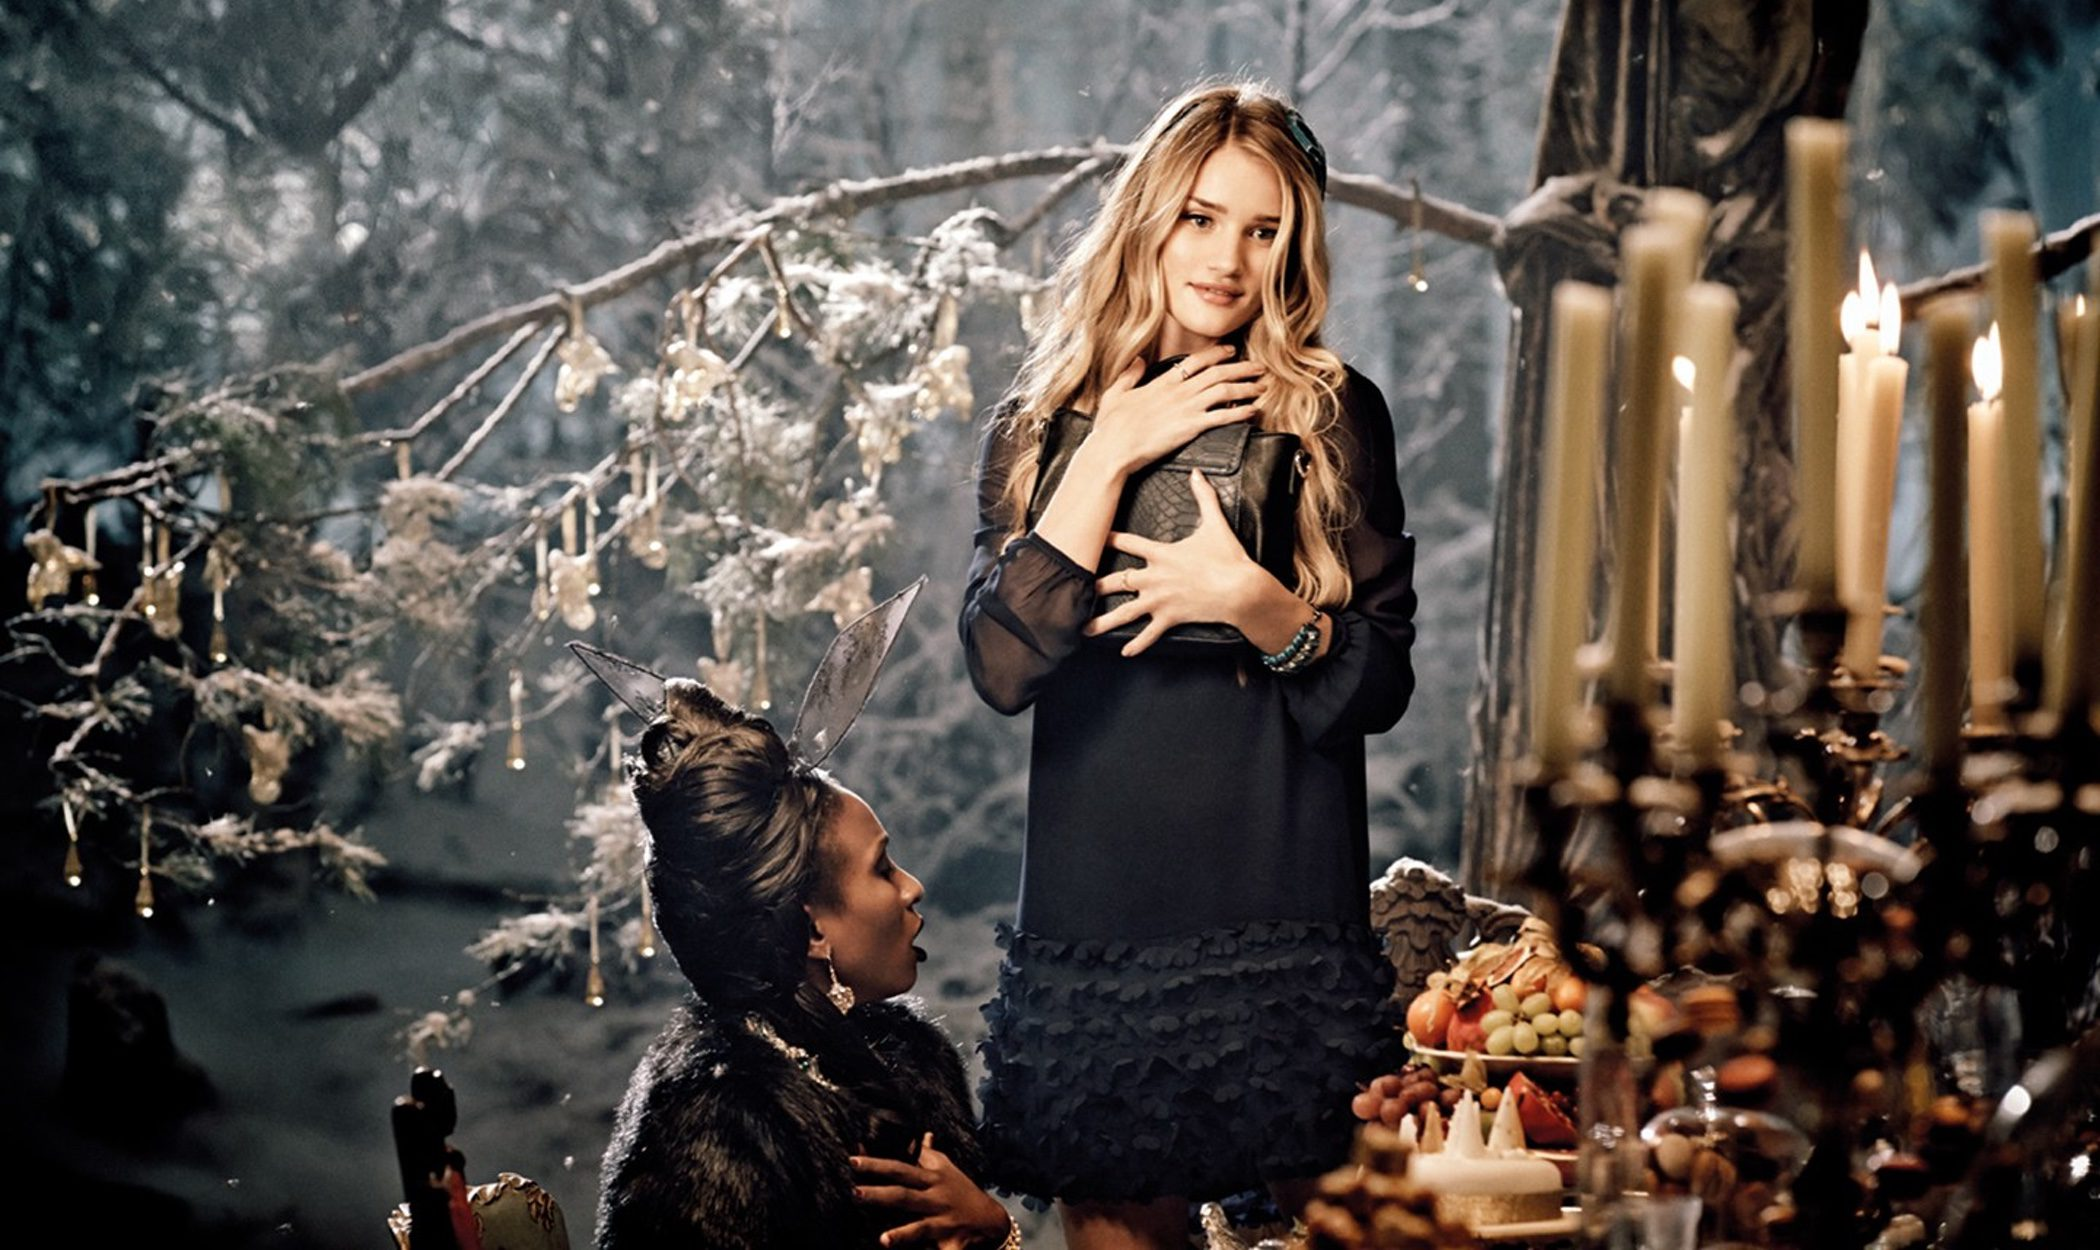 Rosie Huntington-Whiteley y Helena Bonham Carter protagonizan el spot navideño de Marks and Spencer